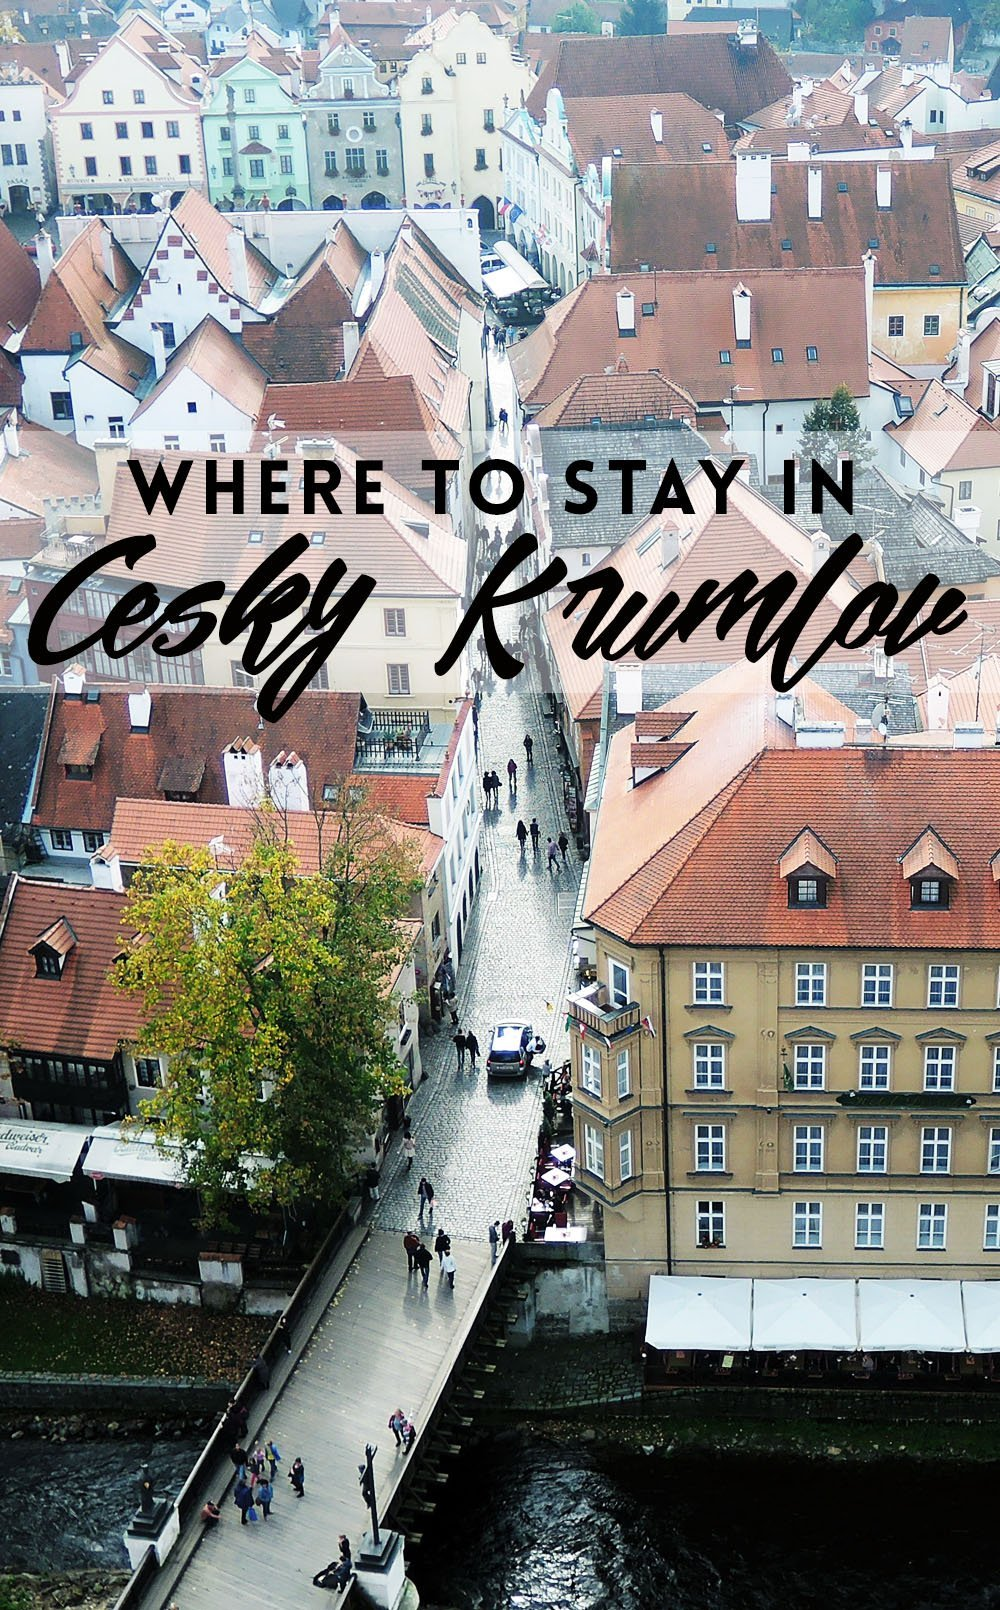 From its medieval castle to its meandering cobbled alleys, Cesky Krumlov is the stuff of fairytales. If you're still wondering whether you should take a day trip or stay for longer, trust me: whether you plan to stay a day, a week, or a month, you'll want to stay a day longer than that. Here's where to stay in Cesky Krumlov.